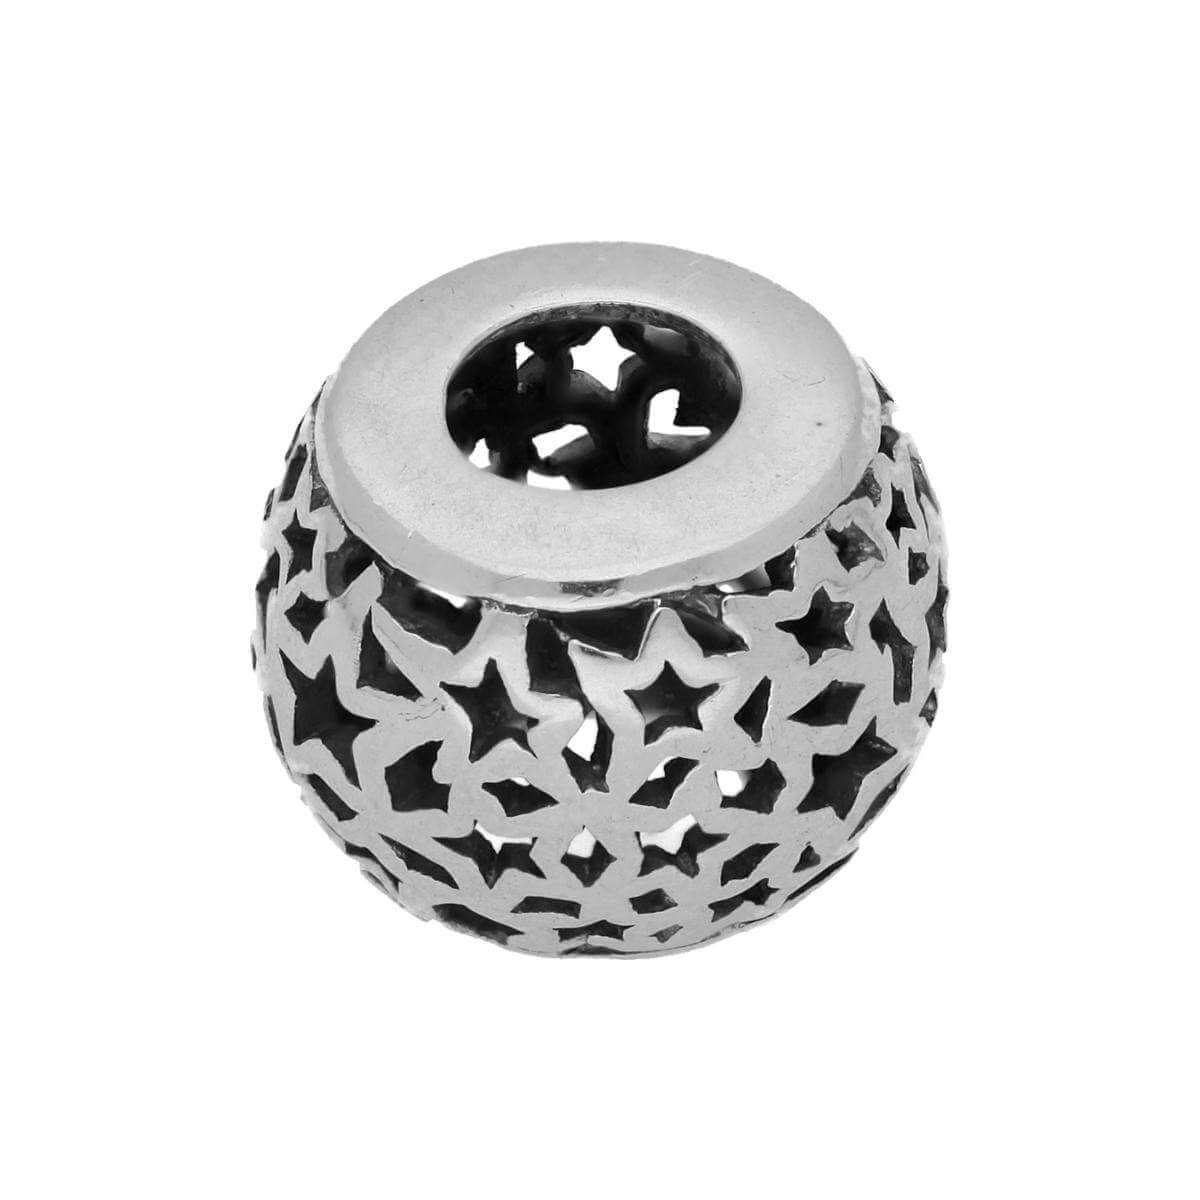 Sterling Silver Round Bead Charm with Cut Out Stars